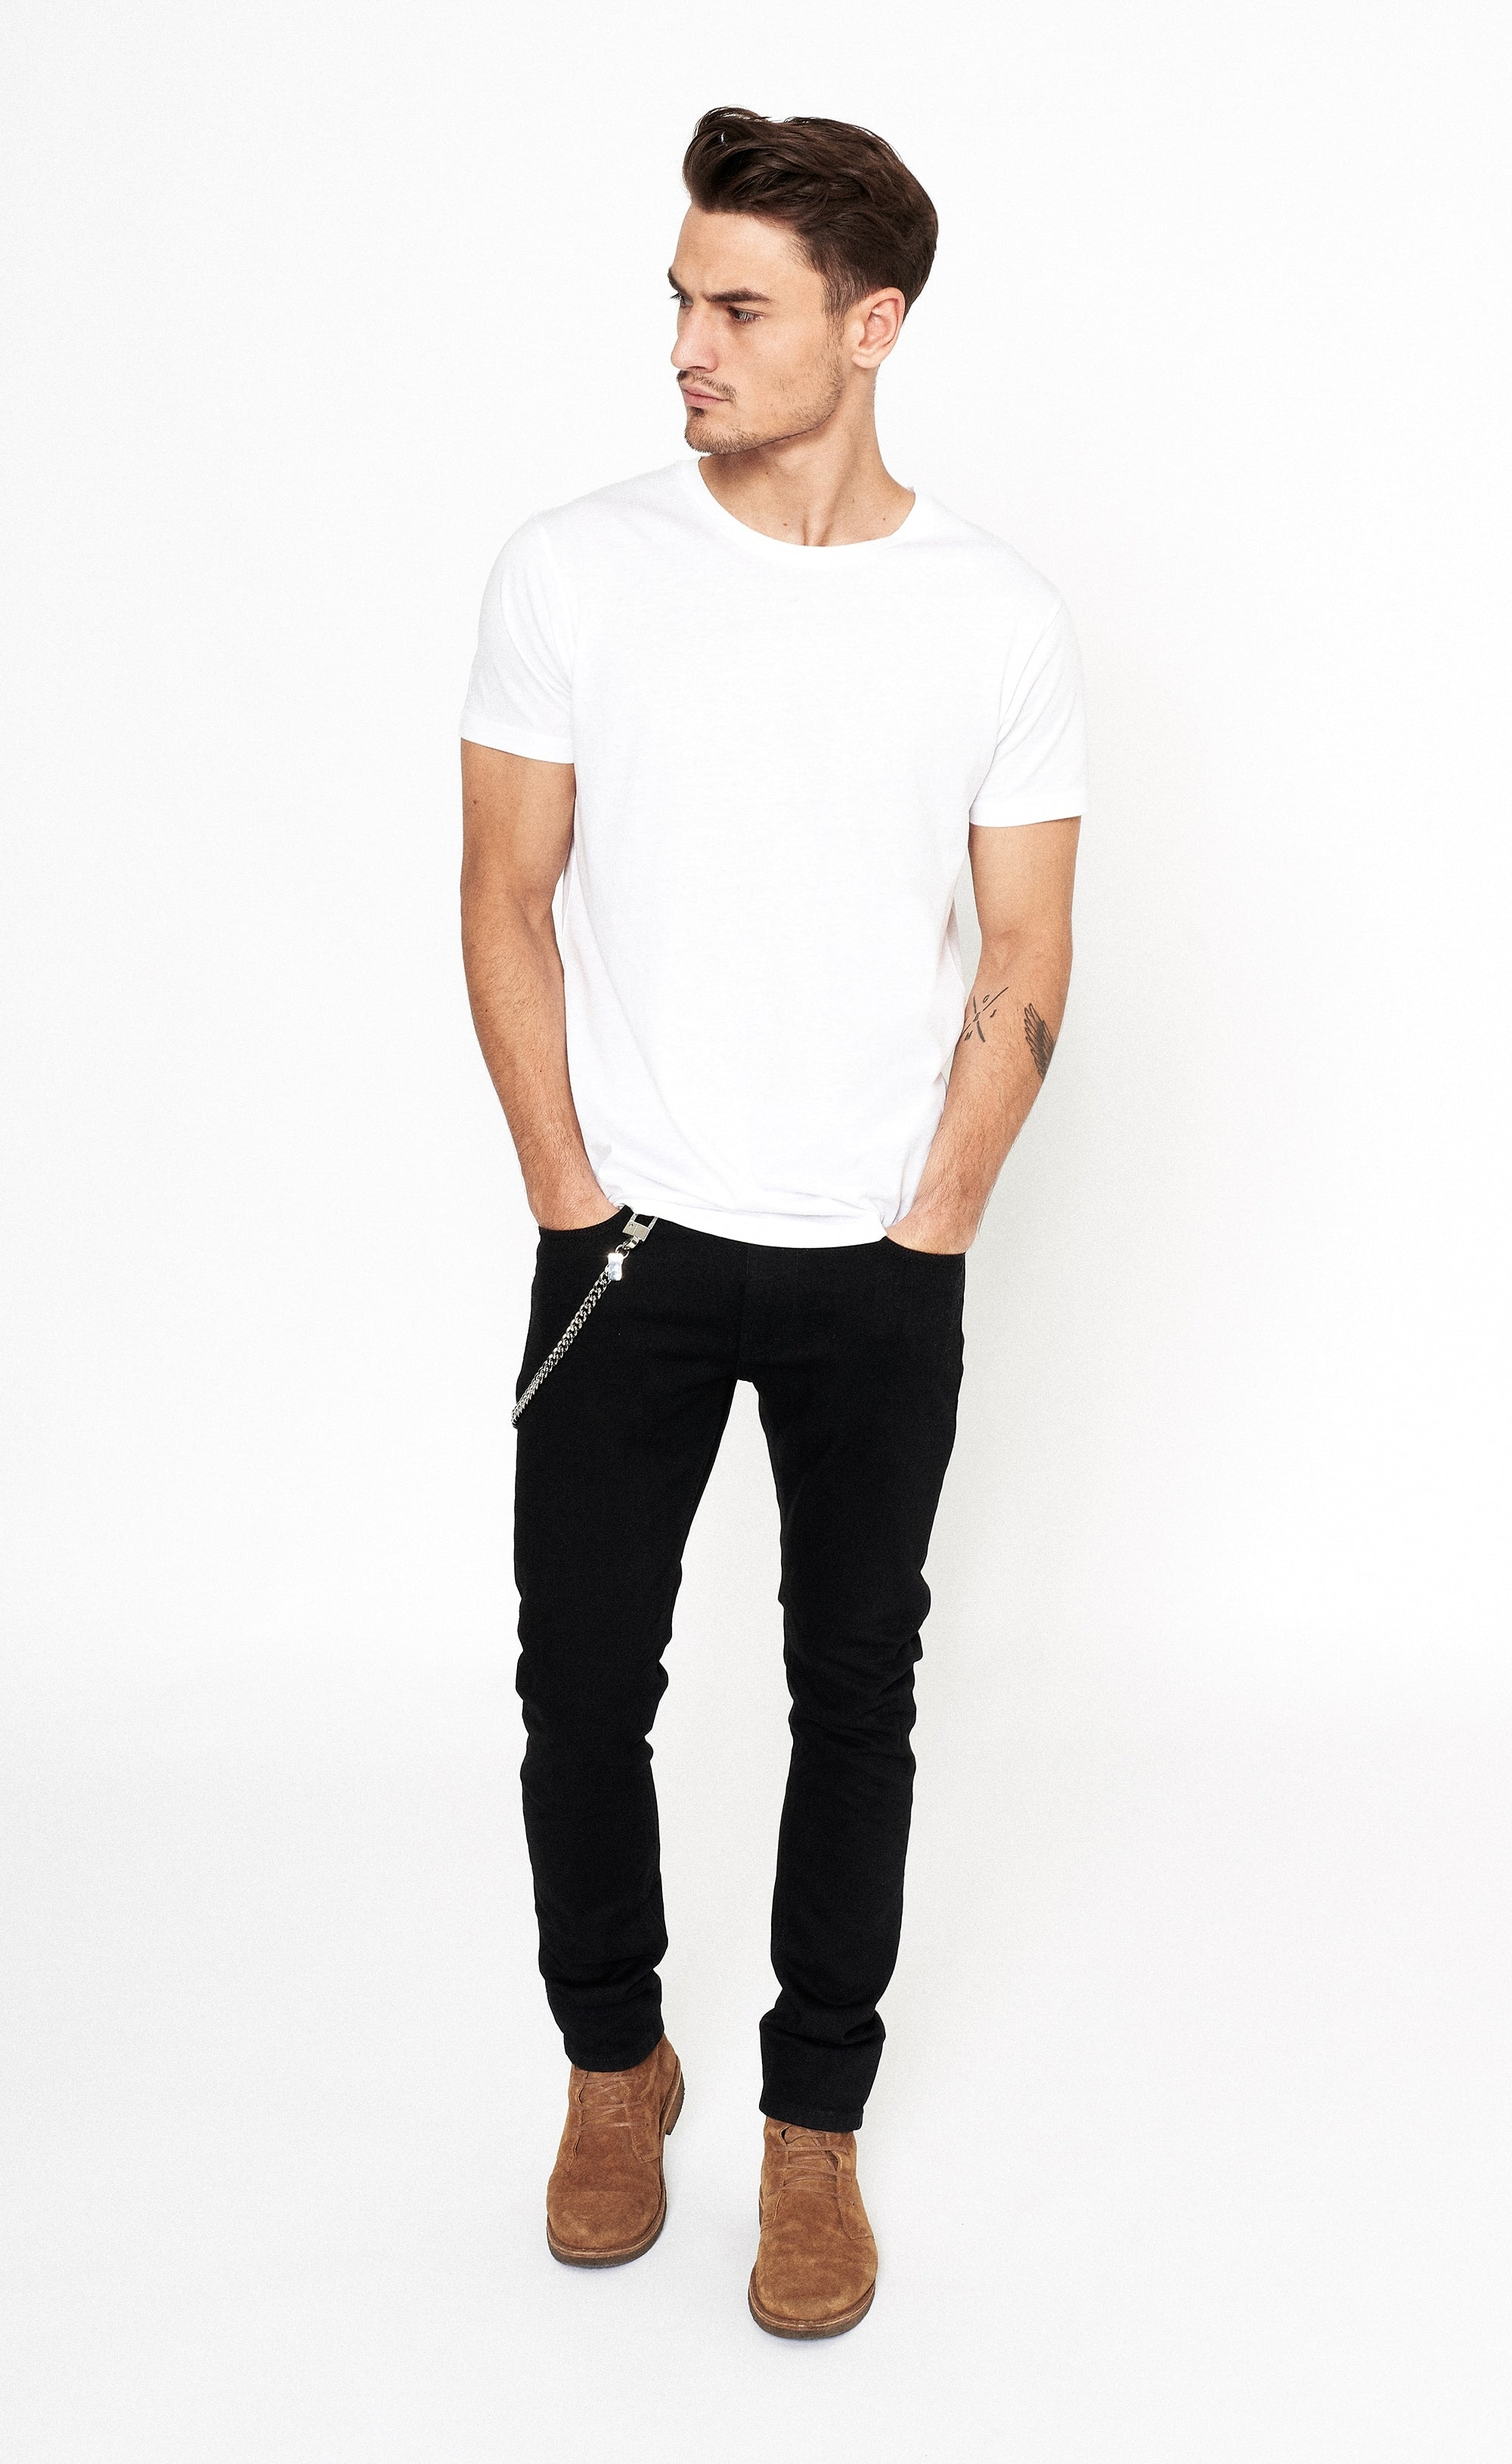 CLASSIC SKINNY JEANS - BLACK - Forage-Clothing